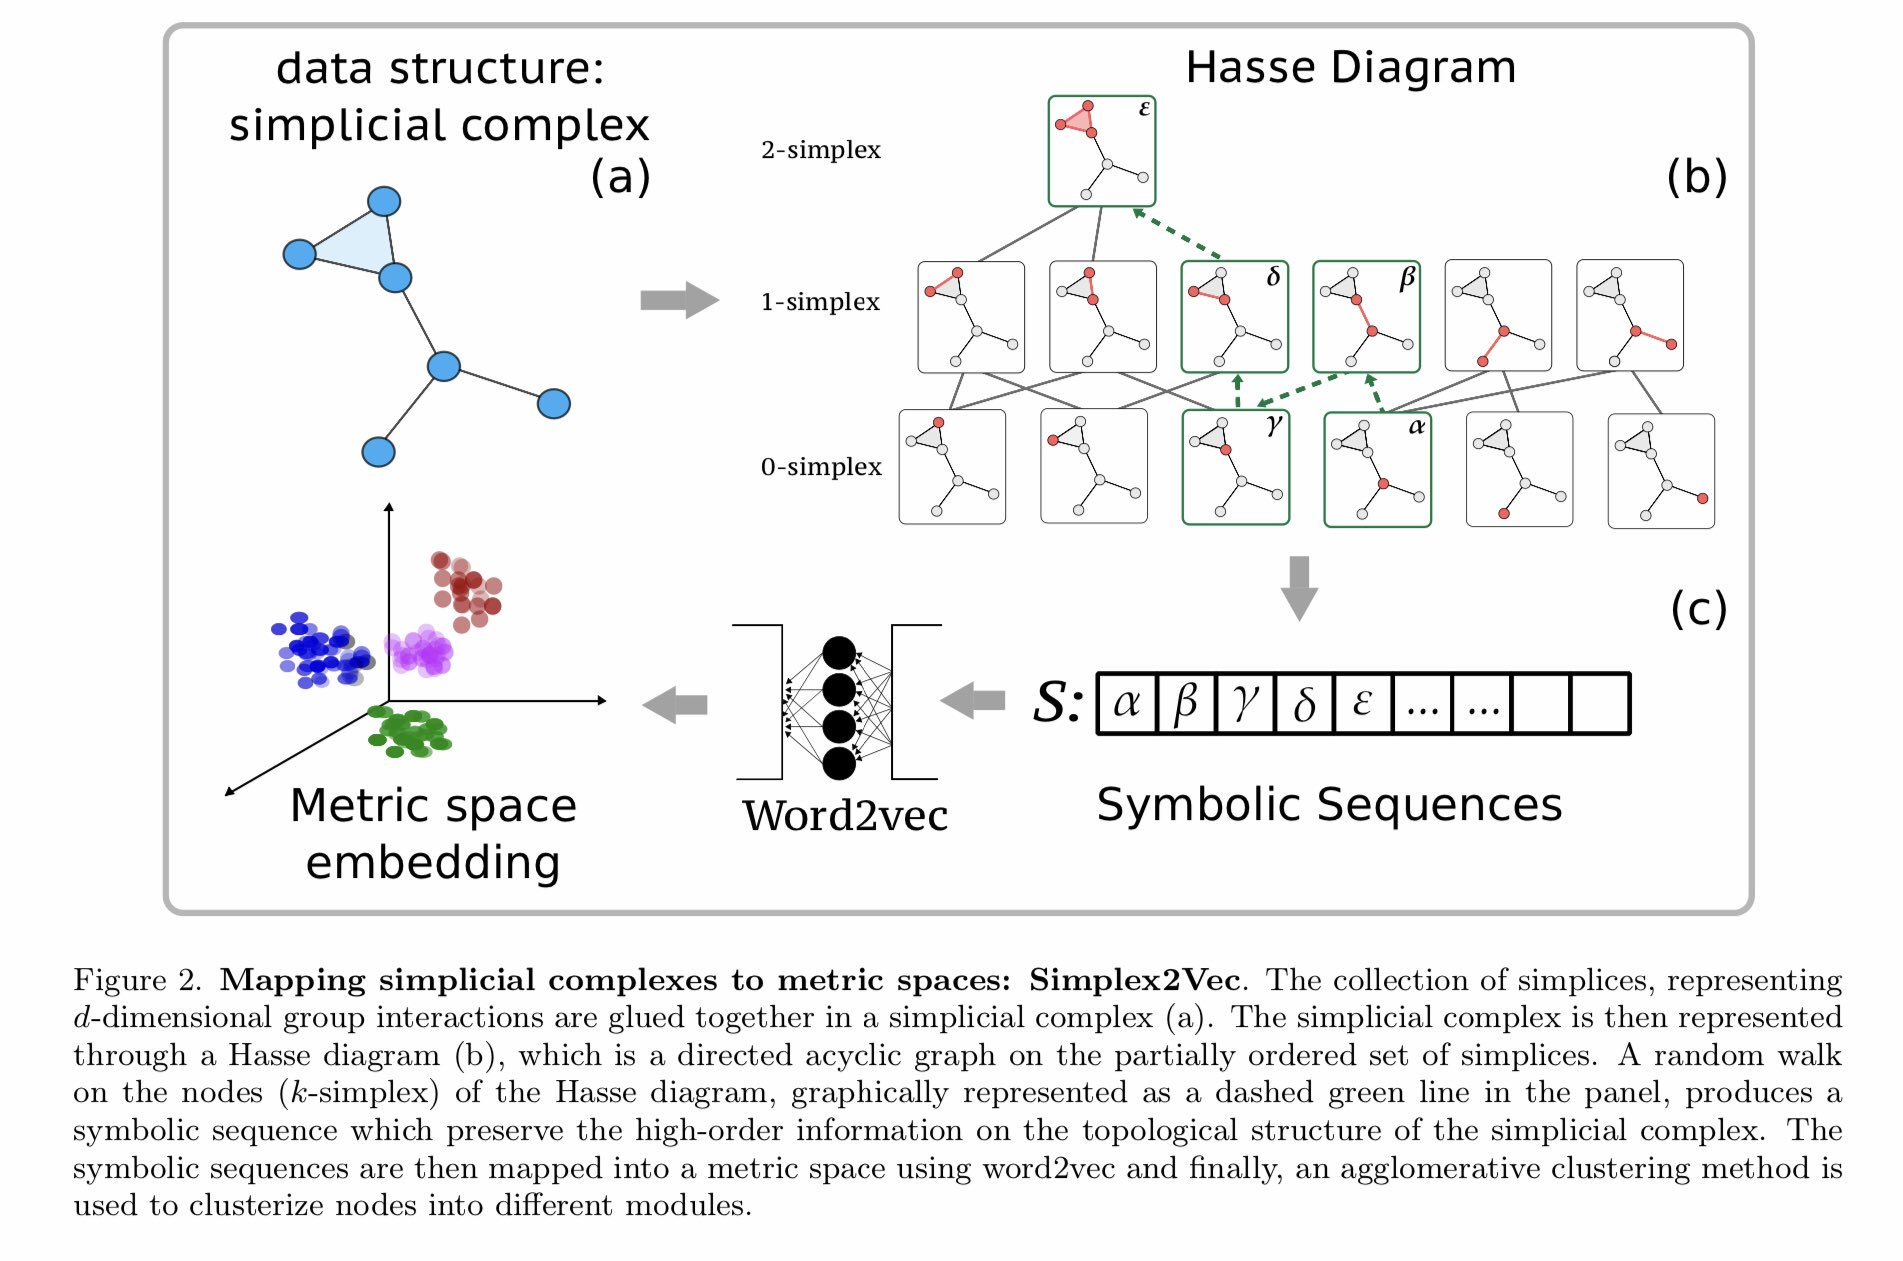 Alessandro Vespignani On Twitter Simplex2vec Embeddings For Community Detection In Simplicial Complexes Recent Advances In Symbolic Embeddings To Compute And Visualize The Community Structures Of Simplicial Complexes Https T Co Qubmsrj9fv